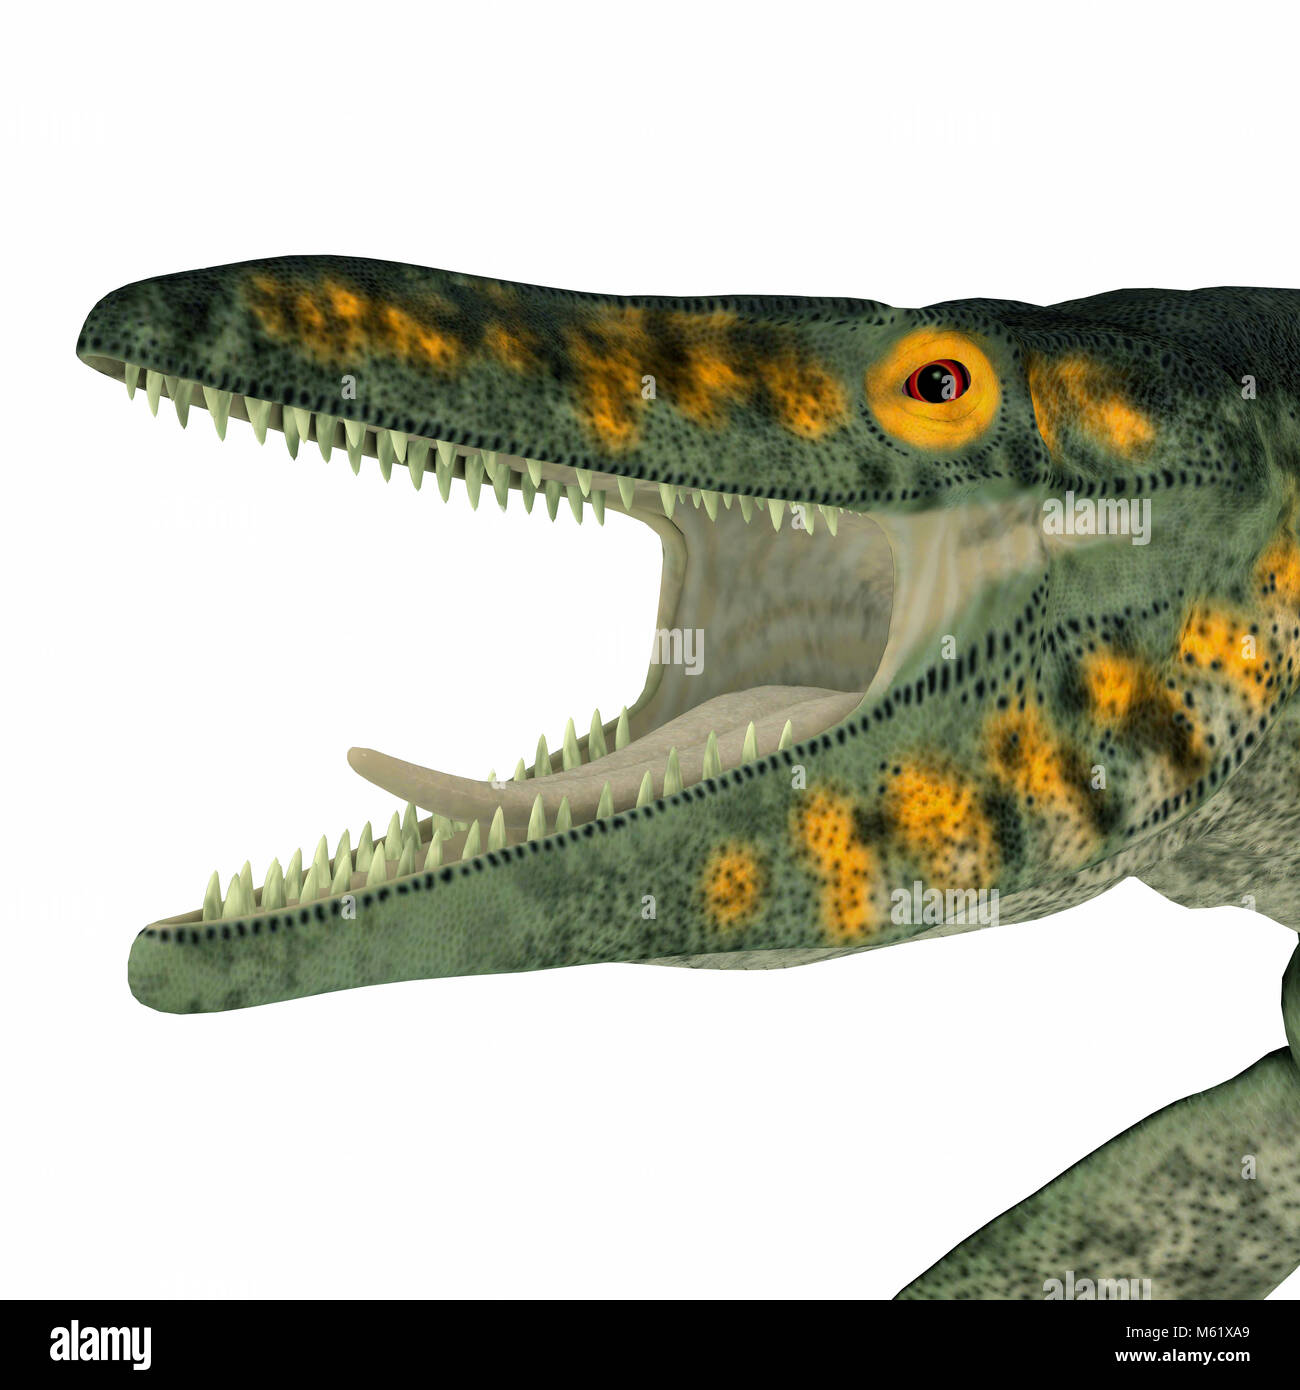 Tylosaurus was a carnivorous marine reptile that lived in the North America Western Interior Seaway during the Cretaceous - Stock Image